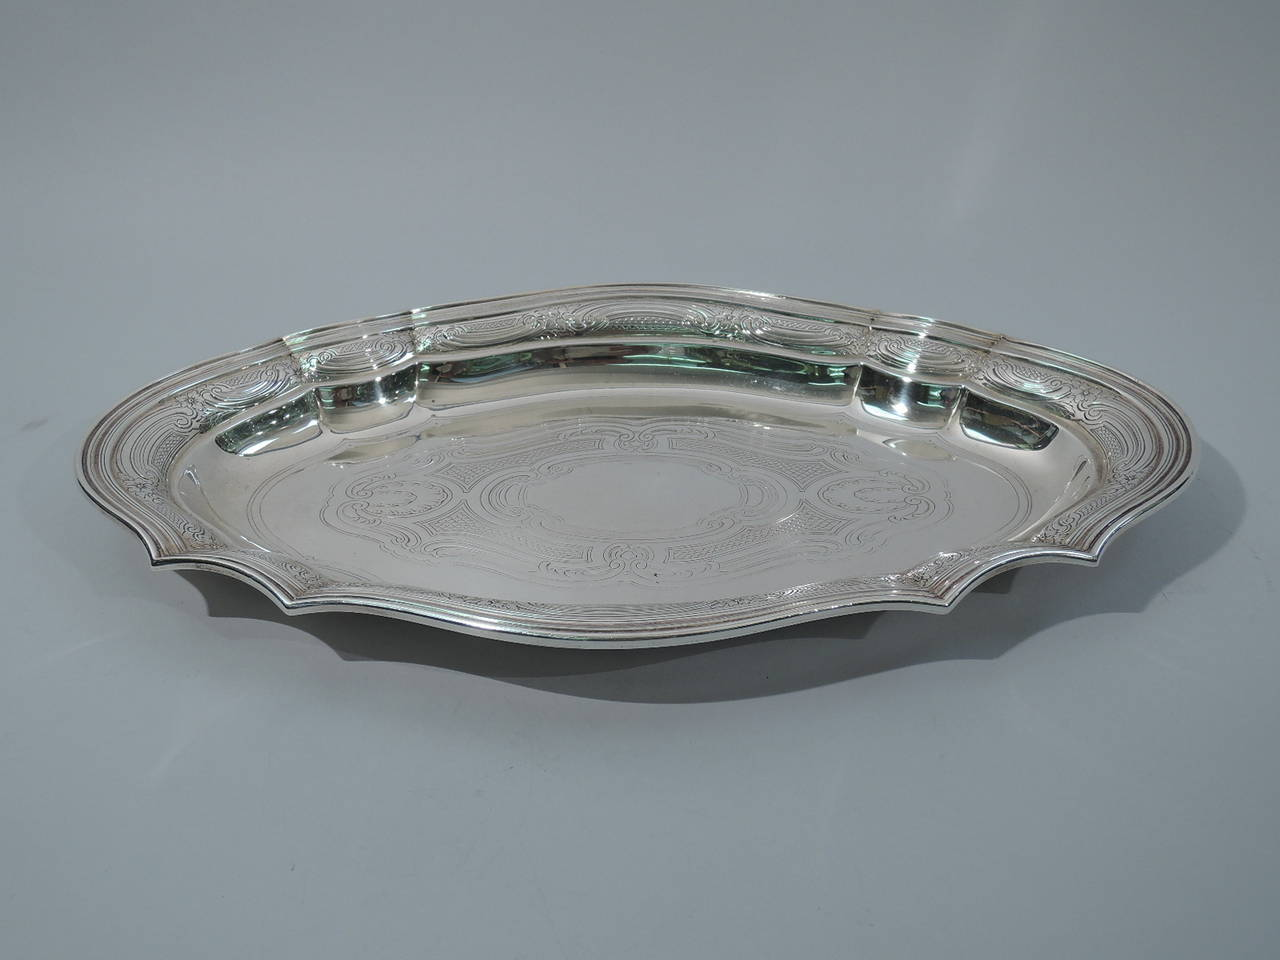 Antique Tiffany Sterling Silver Serving Tray At 1stdibs